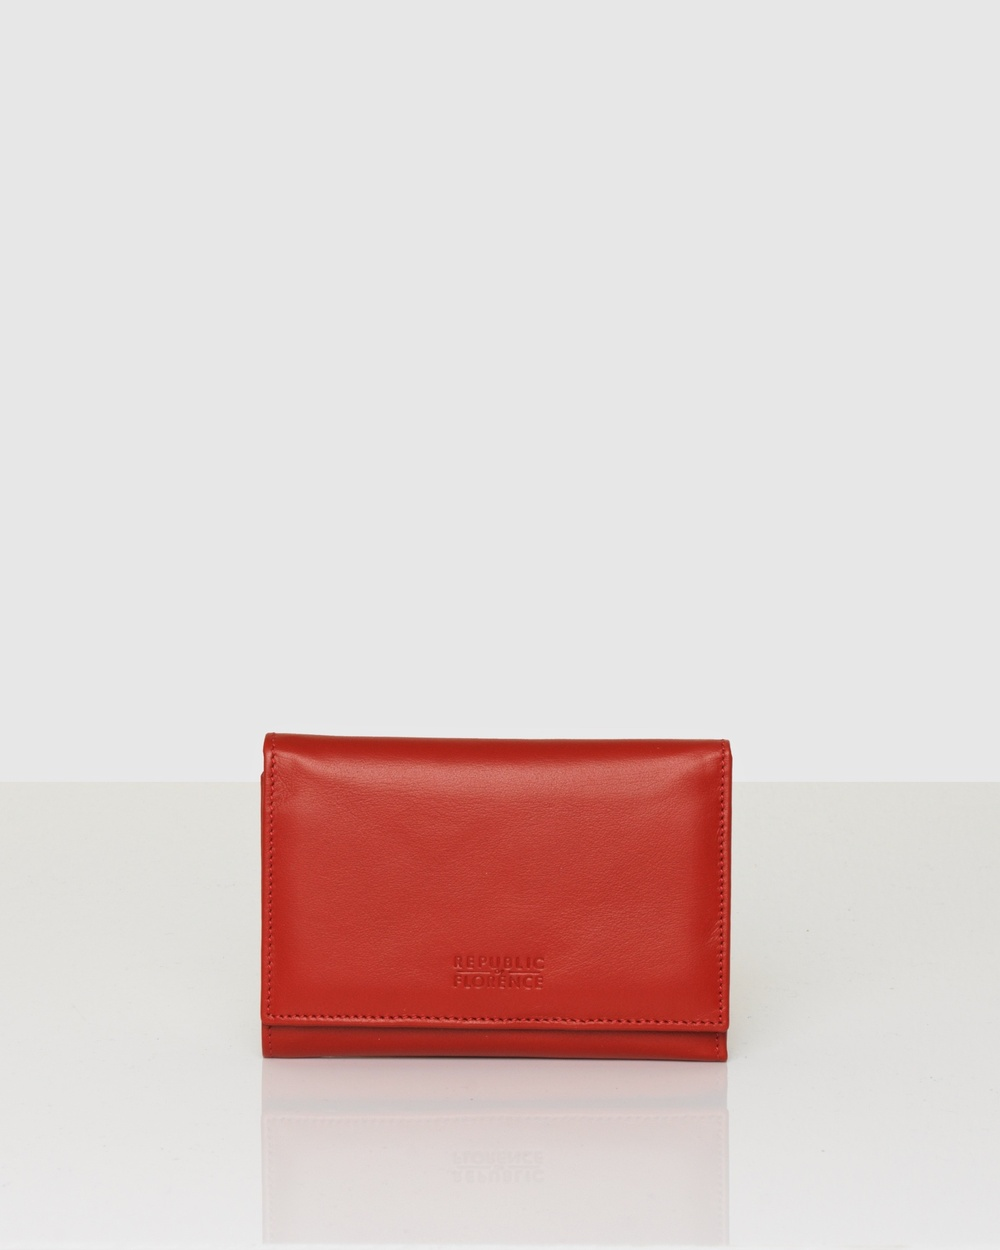 Florence Aida Leather Wallet Wallets Red